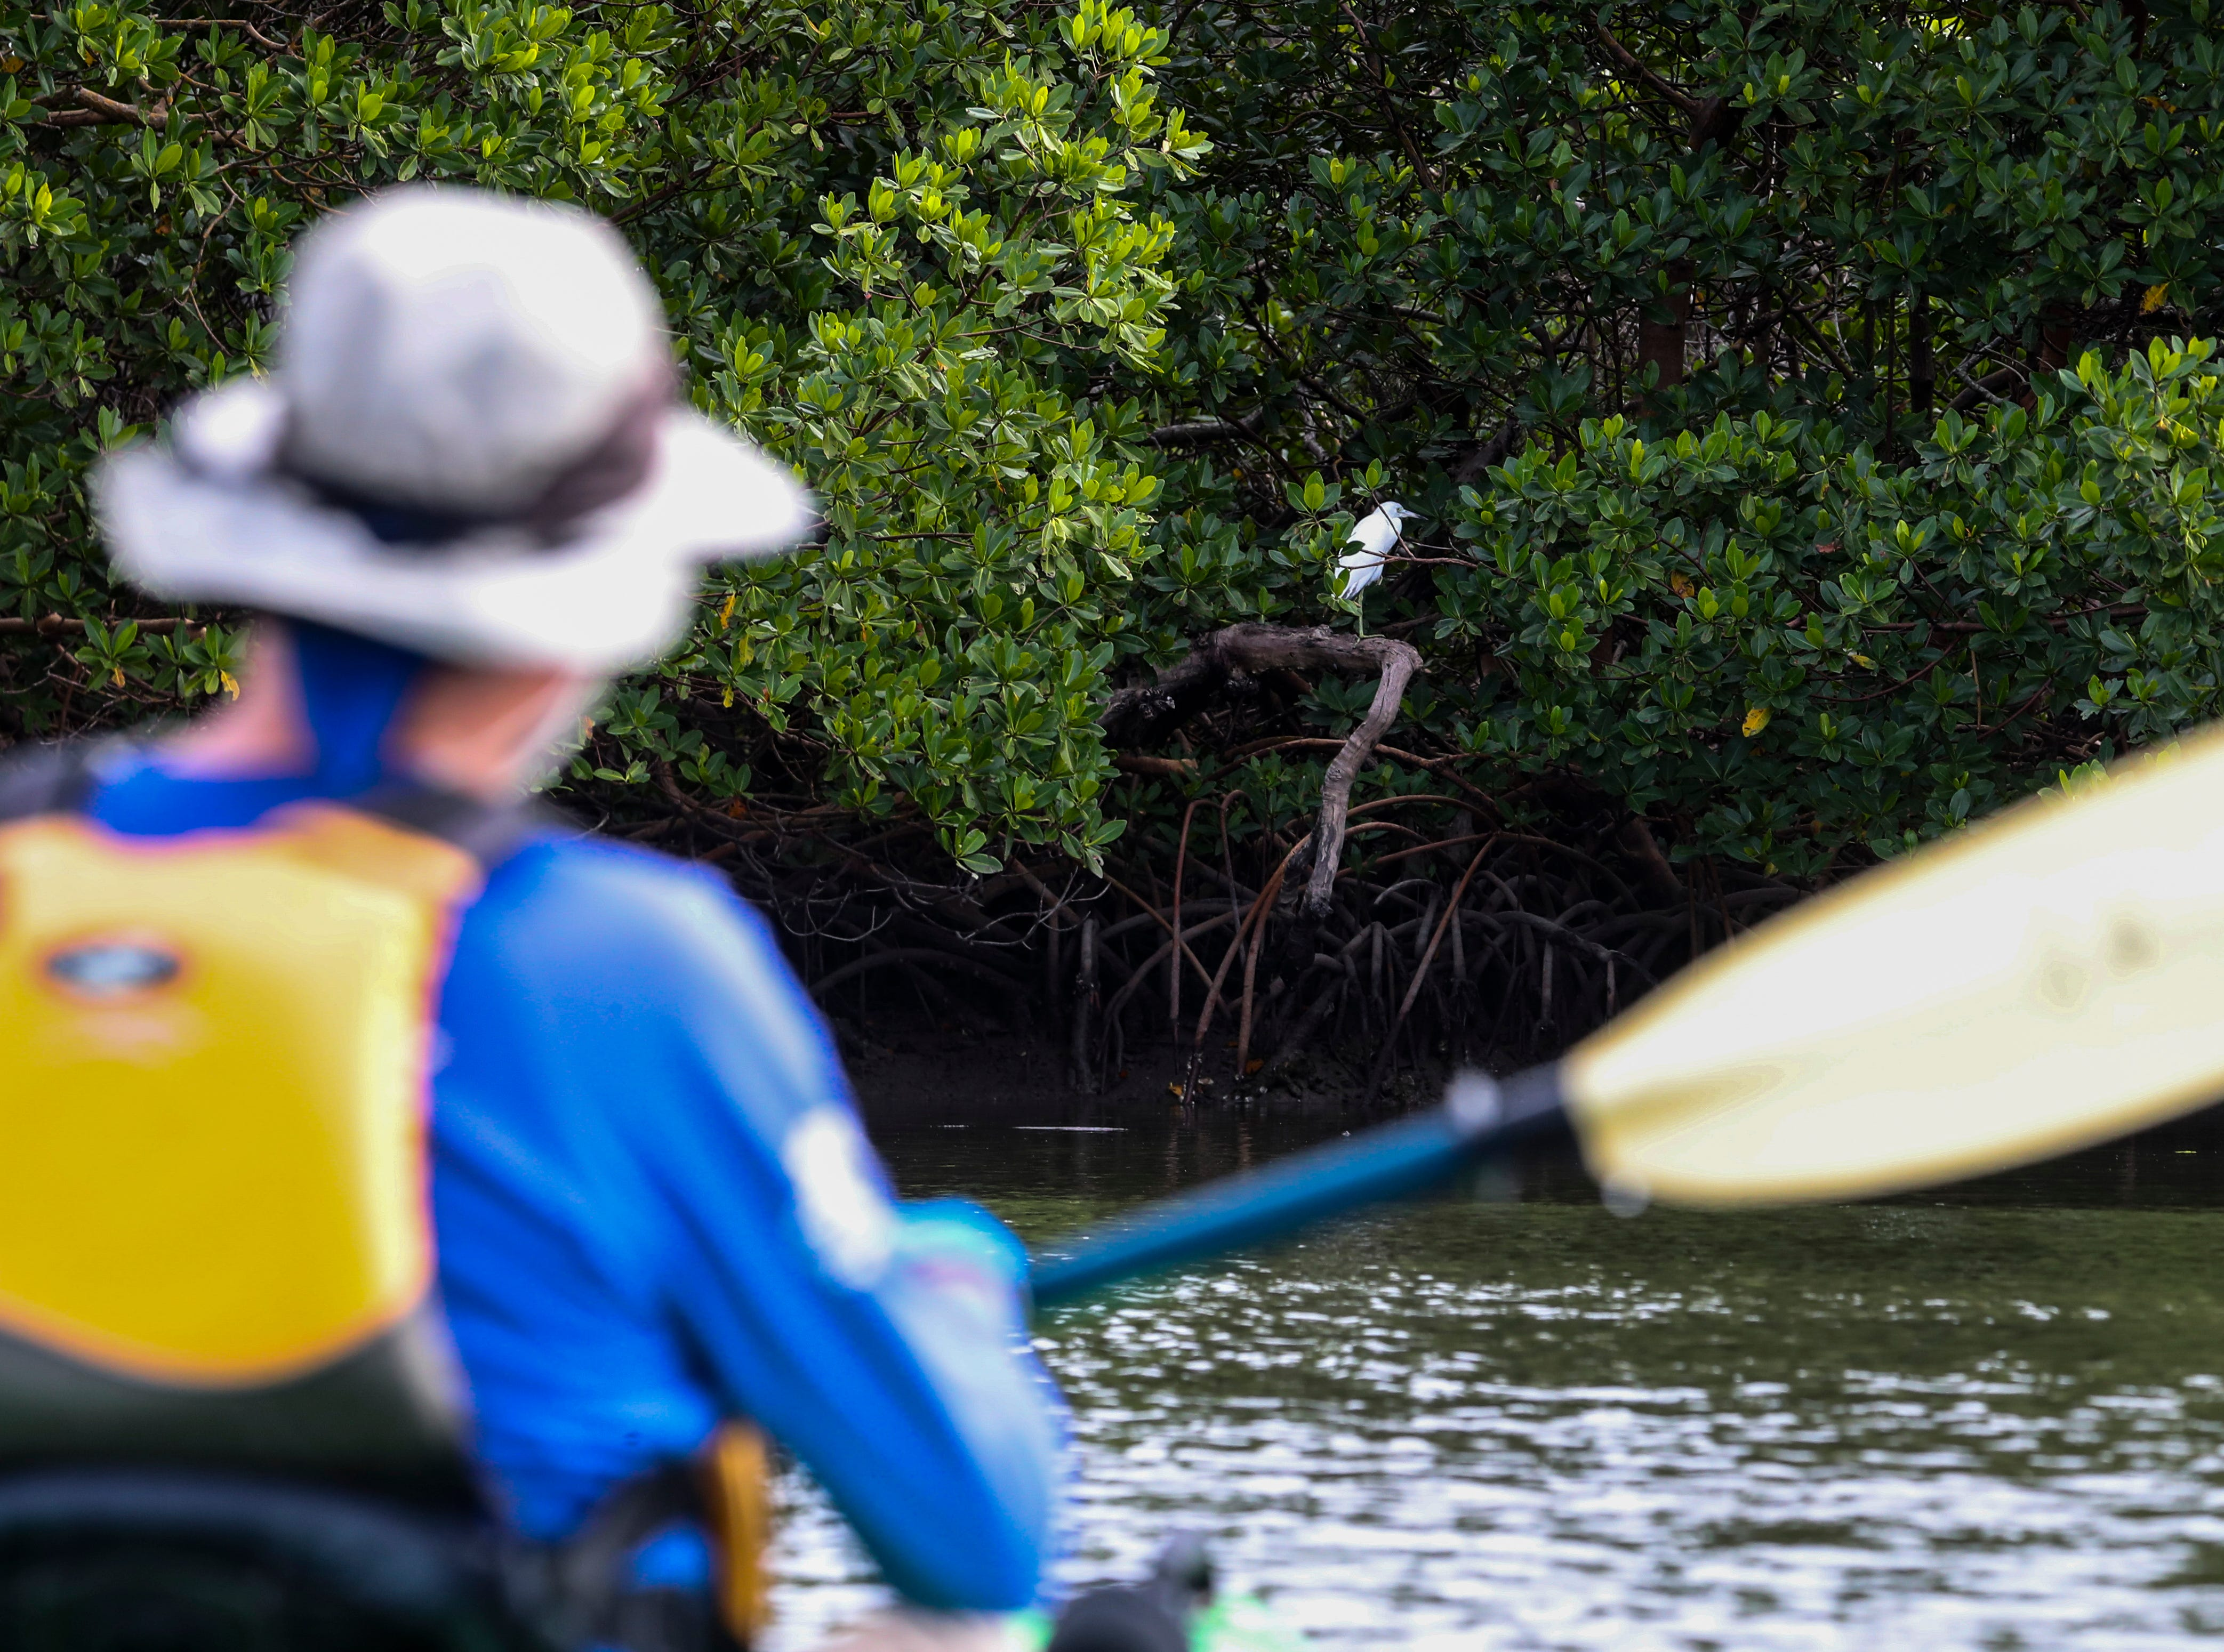 All kinds of wildlife can be seen out on the water. Rookery Bay National Estuarine Research Reserve in Naples offers a two-hour guided kayak tour of Rookery Bay. This tour provides an up-close and personal experience of this irreplaceable national treasure. Paddle through the shallows and maze like mangrove tunnels while learning about  surroundings from an experienced guide and naturalist. Randy McCormick, captain and guide, has worked at the Reserve for many years and knows the area intimately. He is a Certified Interpretive Guide, an instructor in the Florida Master Naturalist program and a fifth generation Floridian.